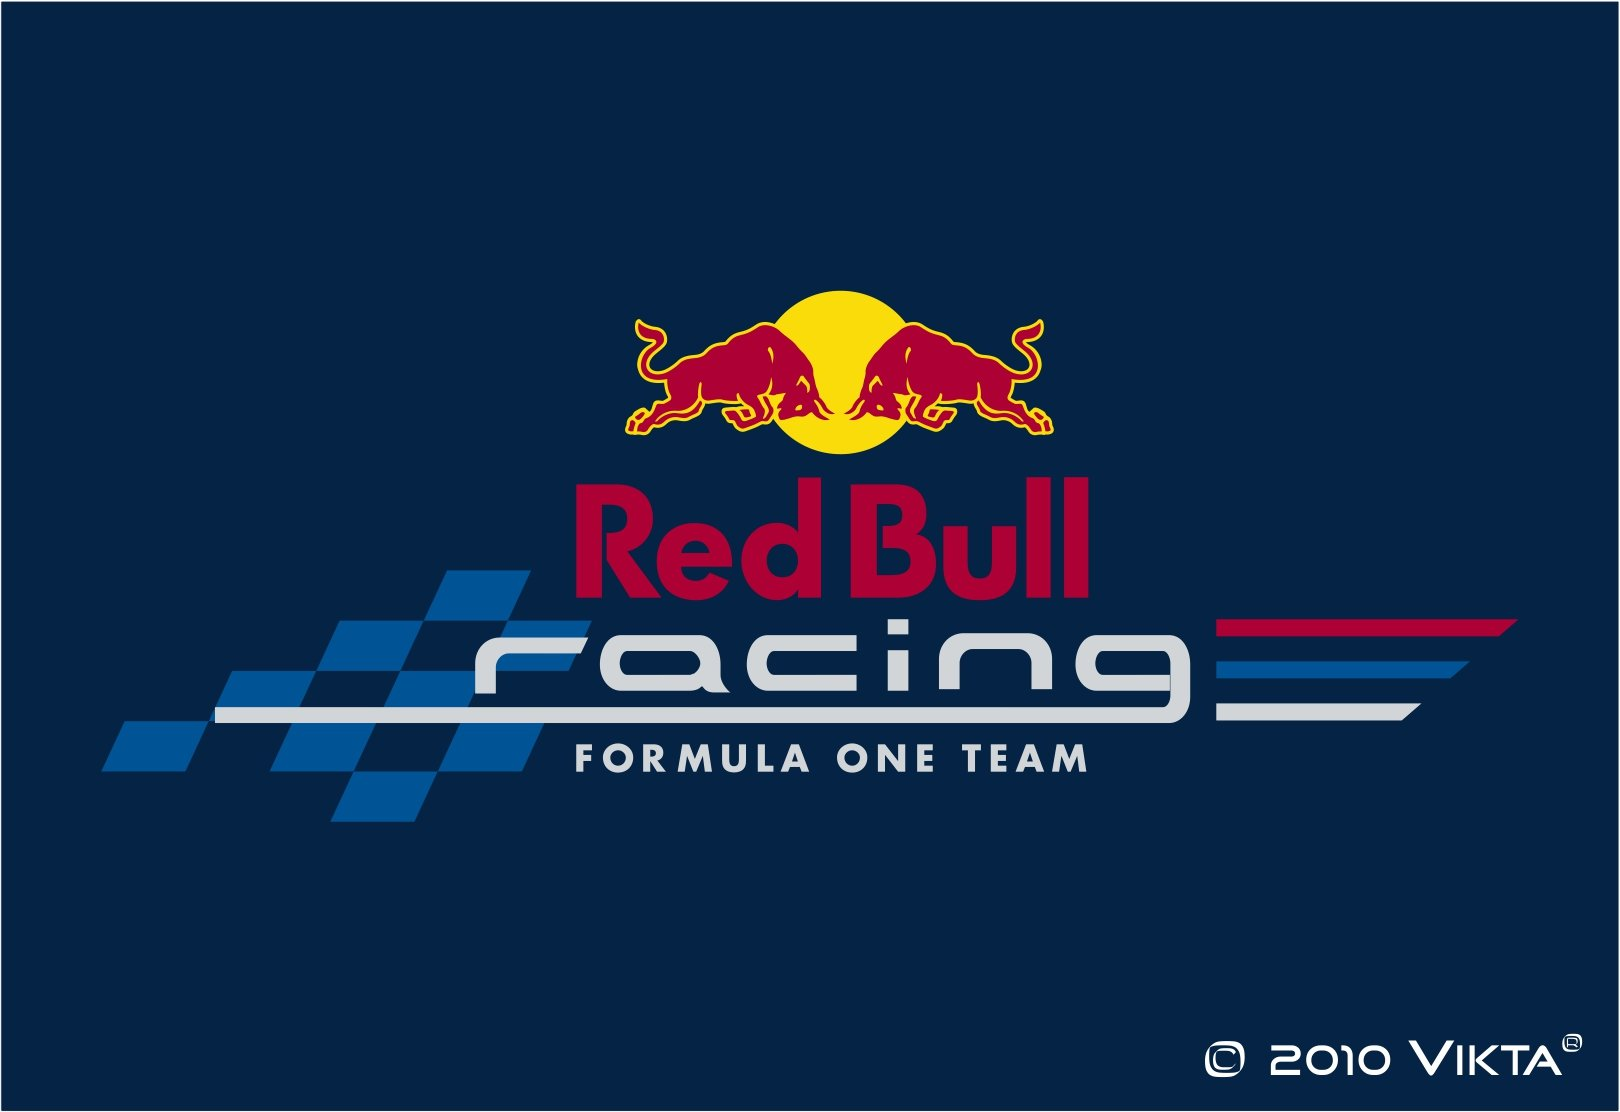 Red bull racing wallpapers hd